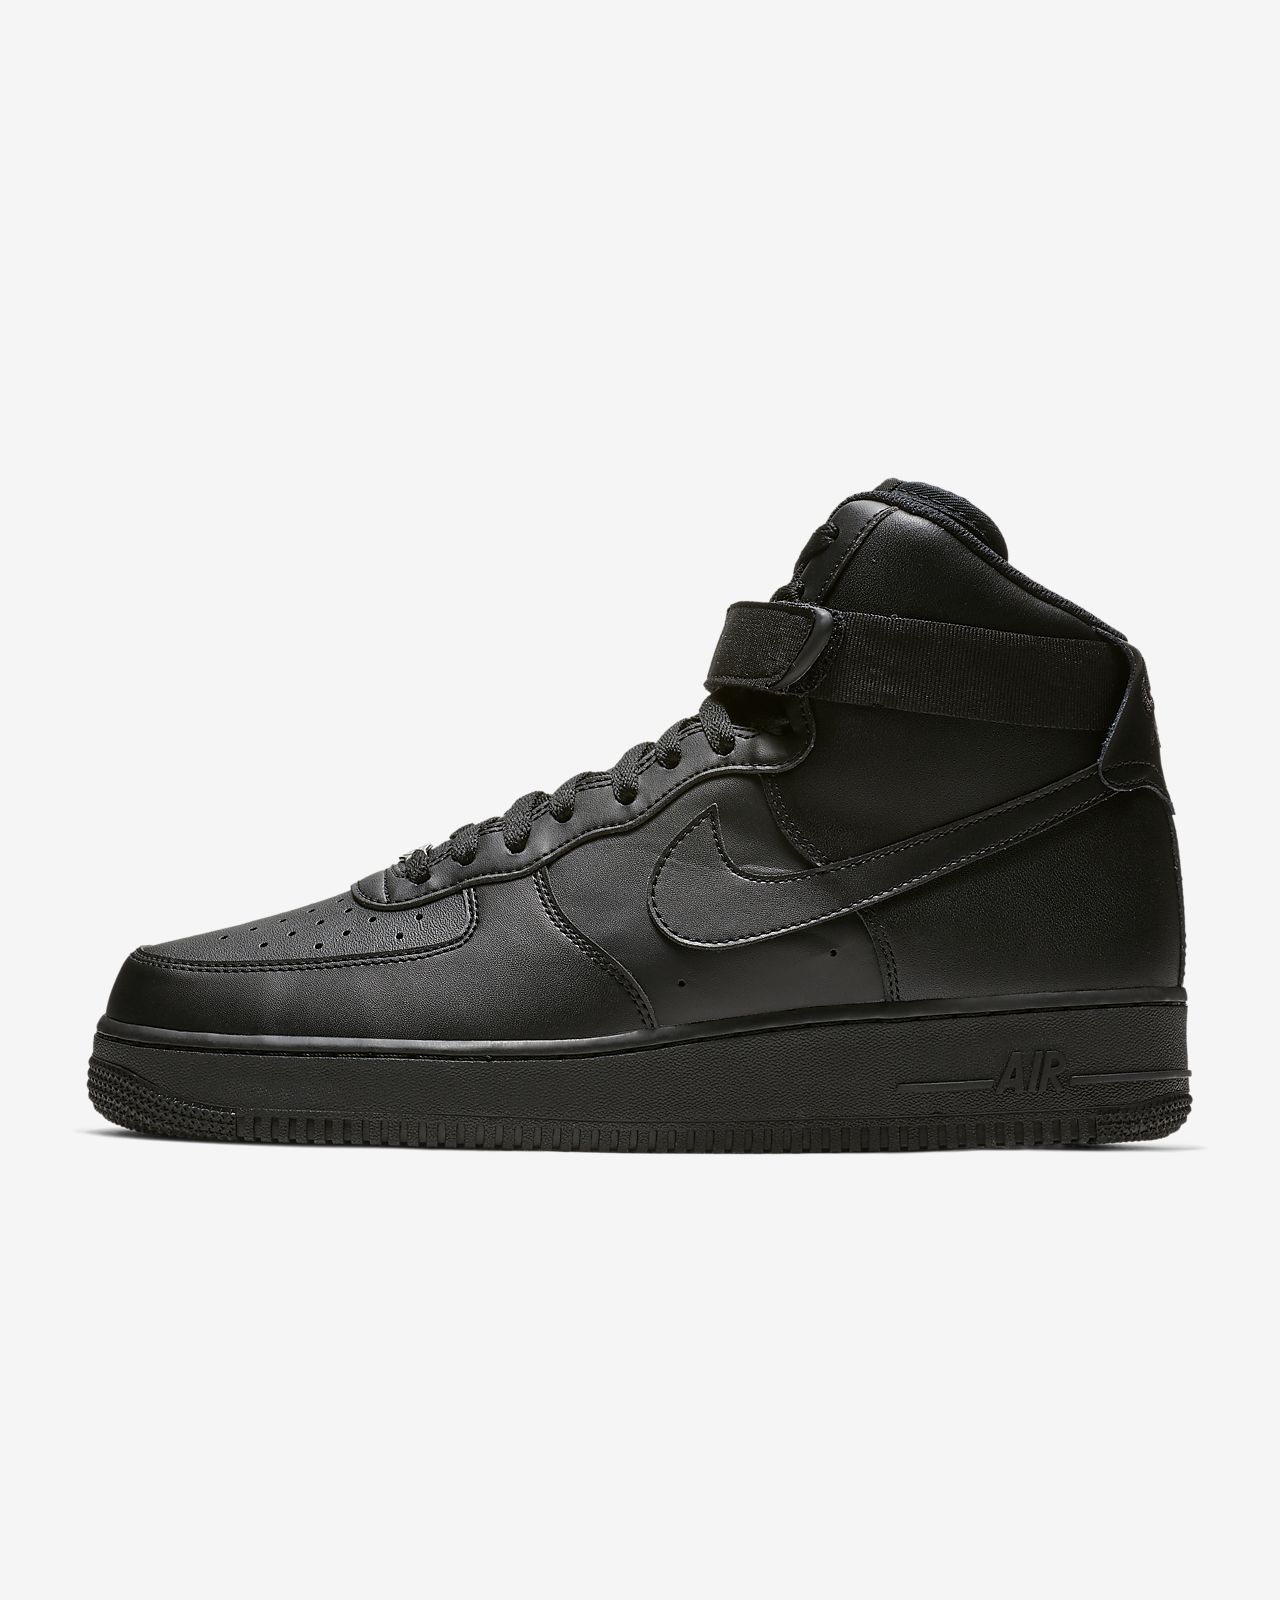 2e36e1247 Nike Air Force 1 High 07 Men's Shoe. Nike.com